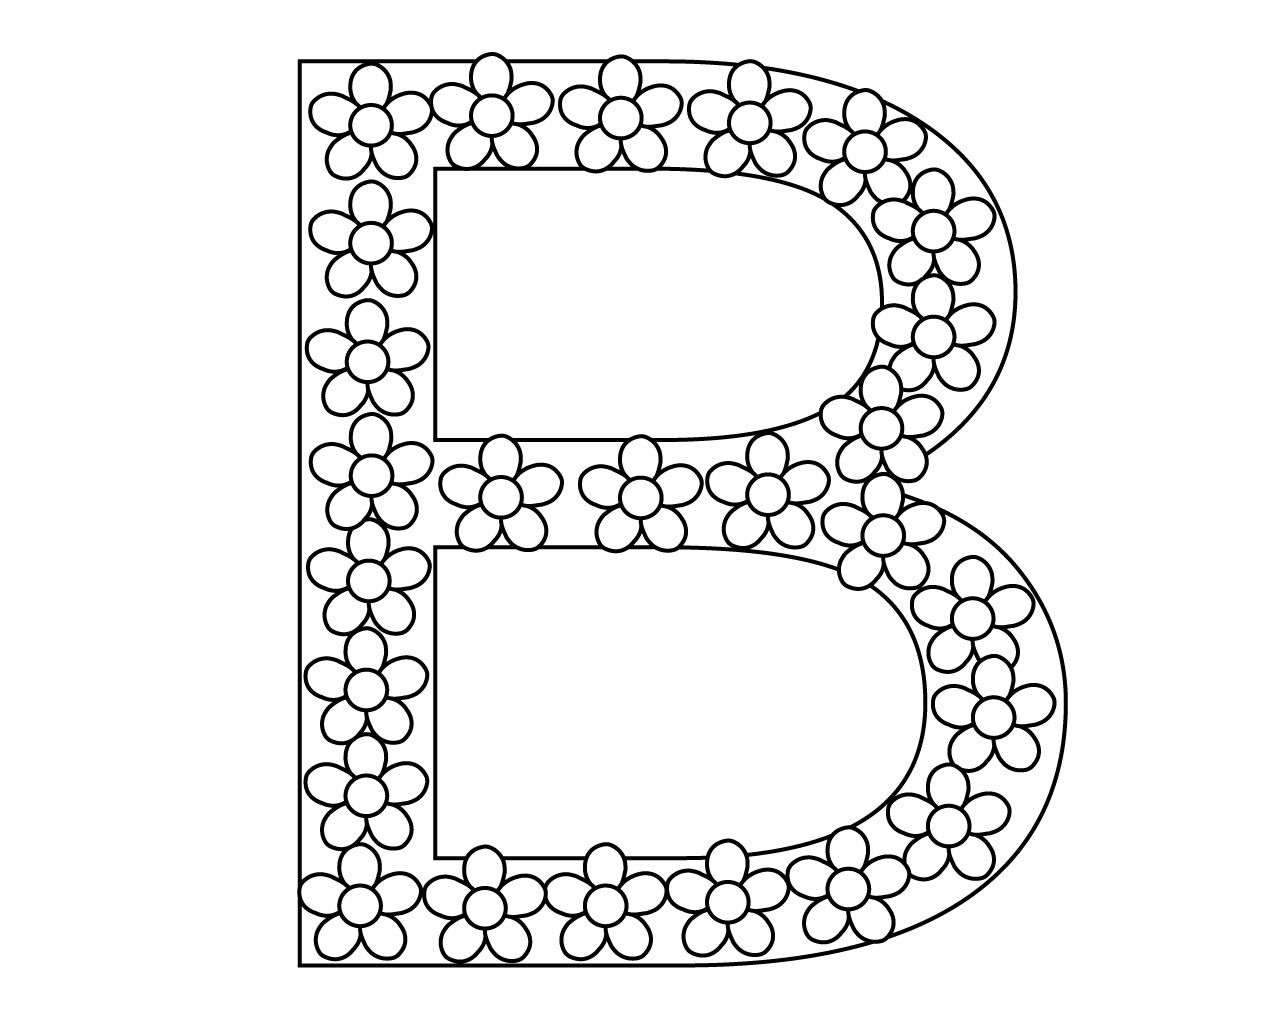 Alphabet Coloring Pages B For Butterfly Abc Coloring Pages Butterfly Coloring Page Letter B Coloring Pages